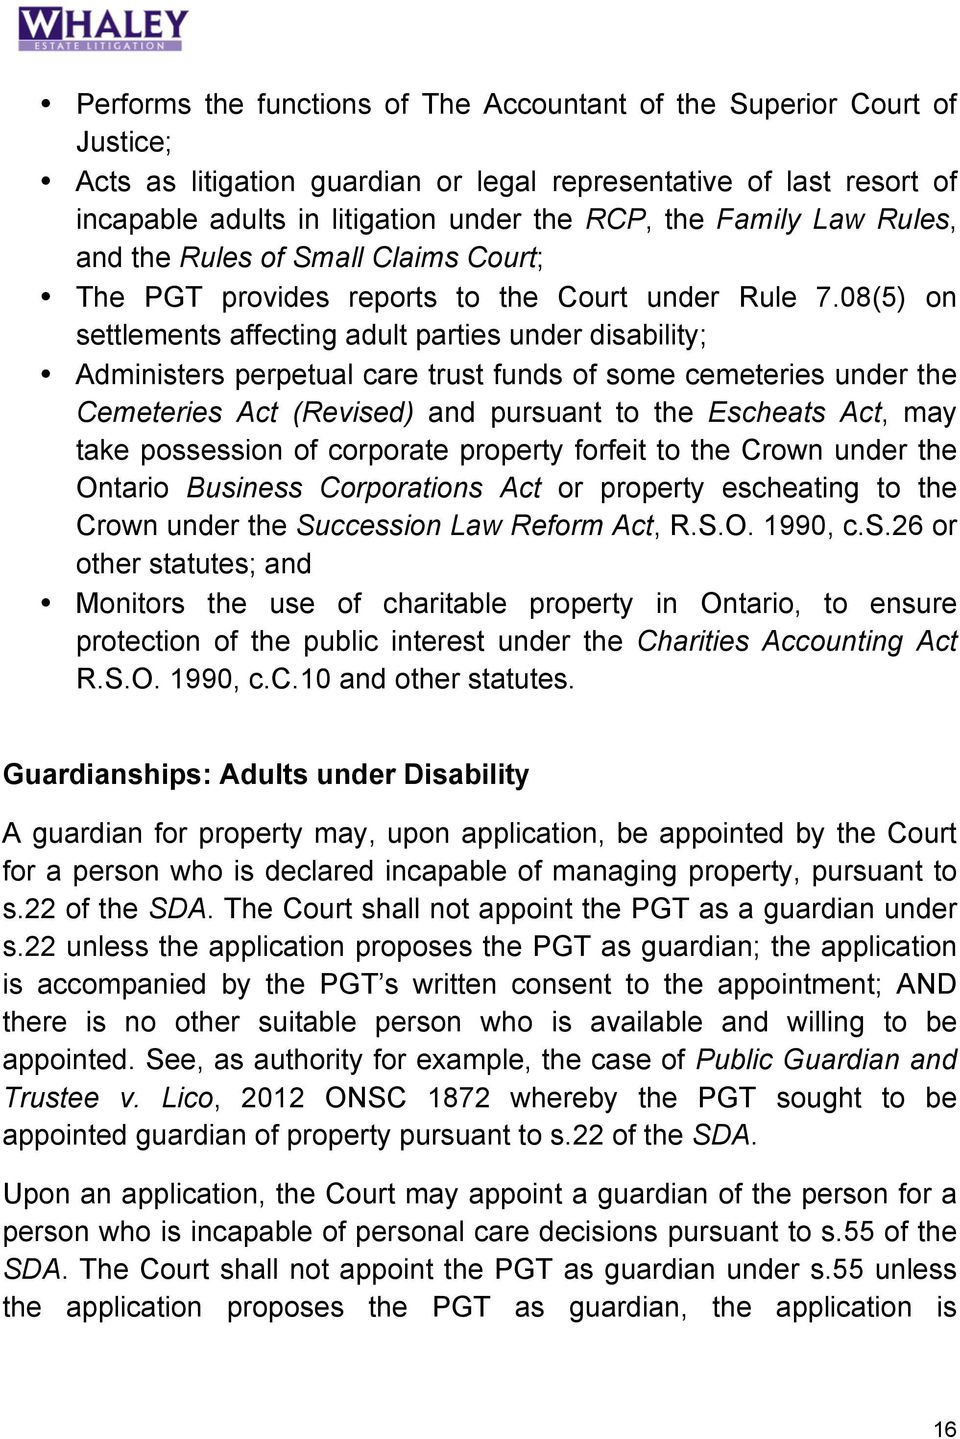 08(5) on settlements affecting adult parties under disability; Administers perpetual care trust funds of some cemeteries under the Cemeteries Act (Revised) and pursuant to the Escheats Act, may take